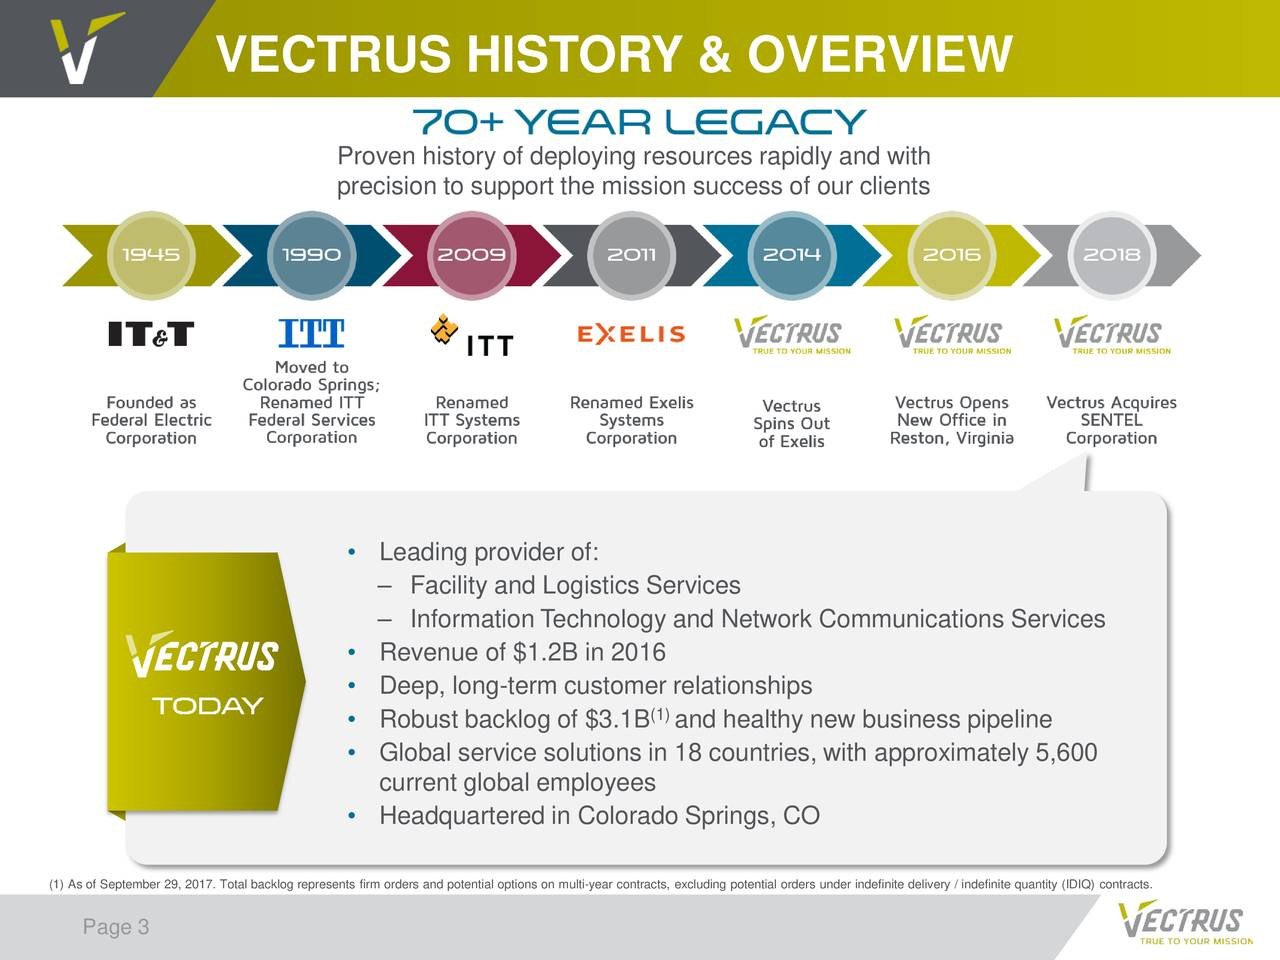 Proven history of deploying resources rapidly and with precision to support the mission success of our clients • Leading provider of: – Facility and Logistics Services – Information Technology and Network CommunicationsServices • Revenue of $1.2B in 2016 • Deep, long-term customer relationships (1) • Robust backlog of $3.1B and healthy new business pipeline • Global service solutions in 18 countries, with approximately 5,600 current global employees • Headquartered in Colorado Springs, CO (1) As of September 29, 2017. Total backlog represents firm orders and potential options on multi-year contracts, excluding potential orders under indefinite delivery / indefinite quantity (IDIQ) contracts. Page 3